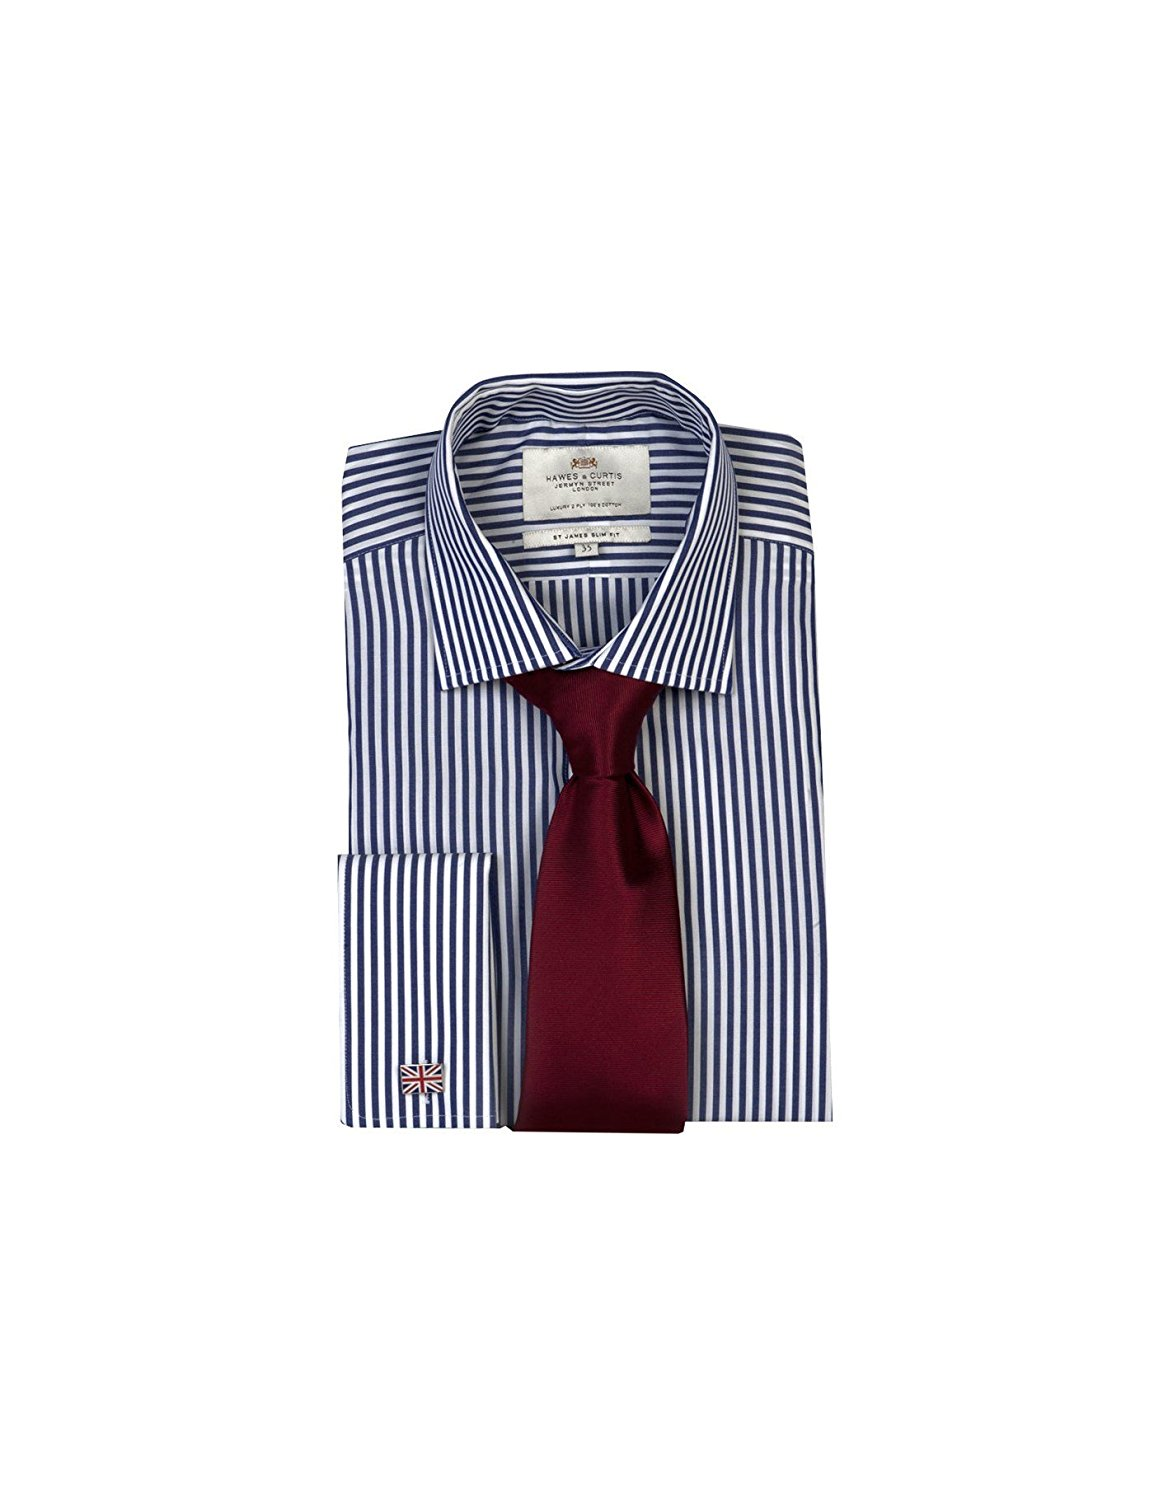 beff991462 Get Quotations · HAWES & CURTIS Mens Navy & White Bengal Stripe Slim Fit  Shirt - Double Cuff